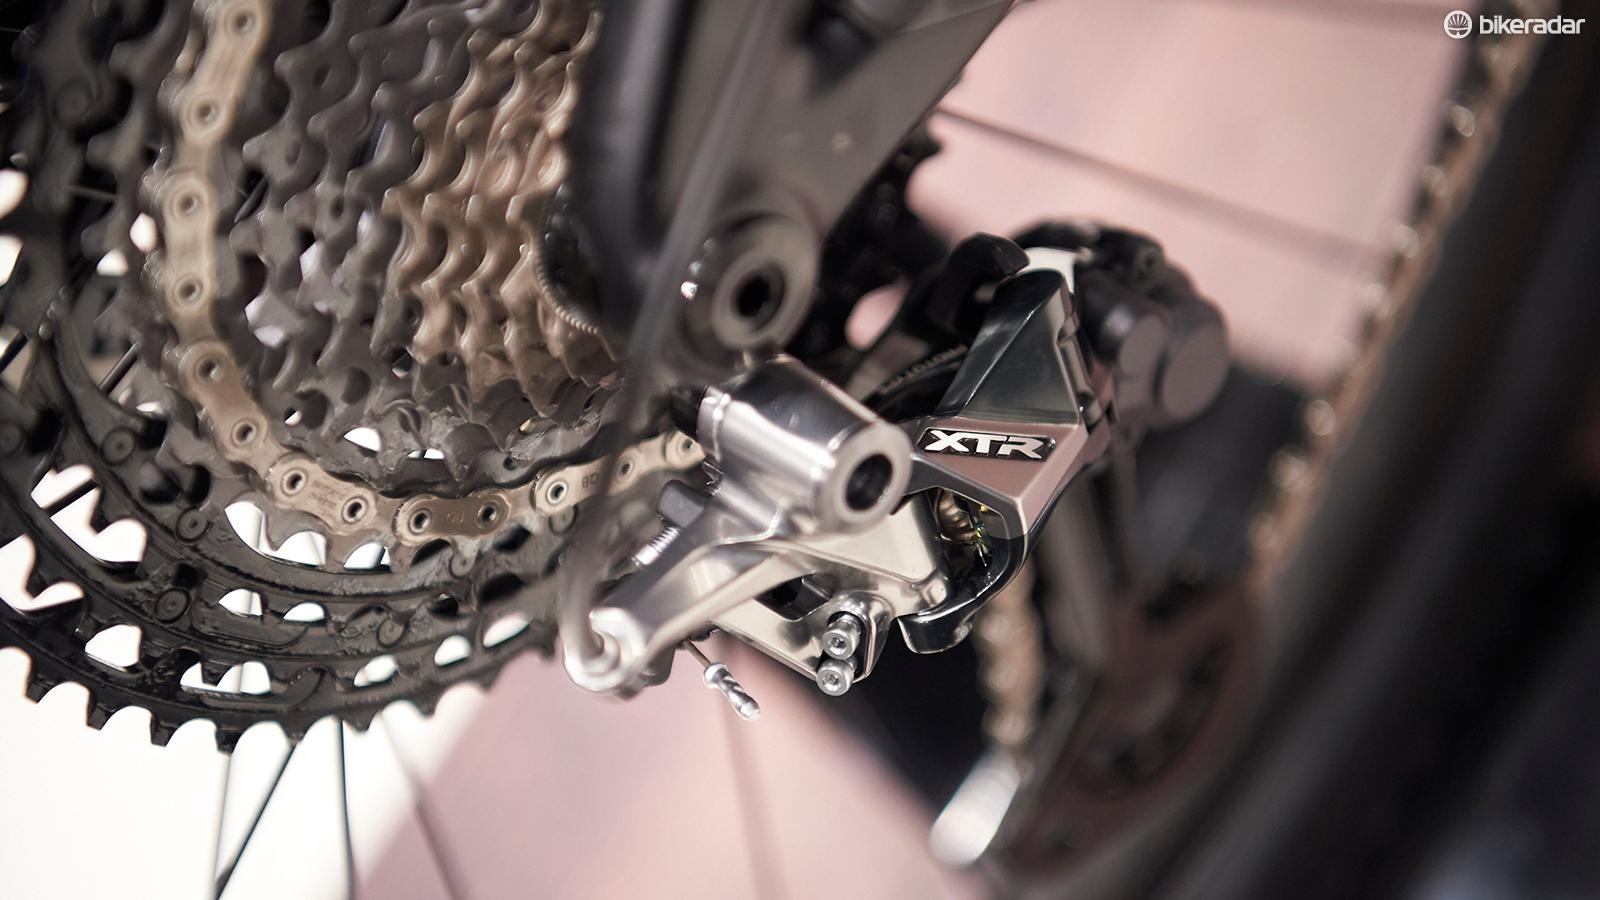 There are three versions of the latest XTR rear derailleur